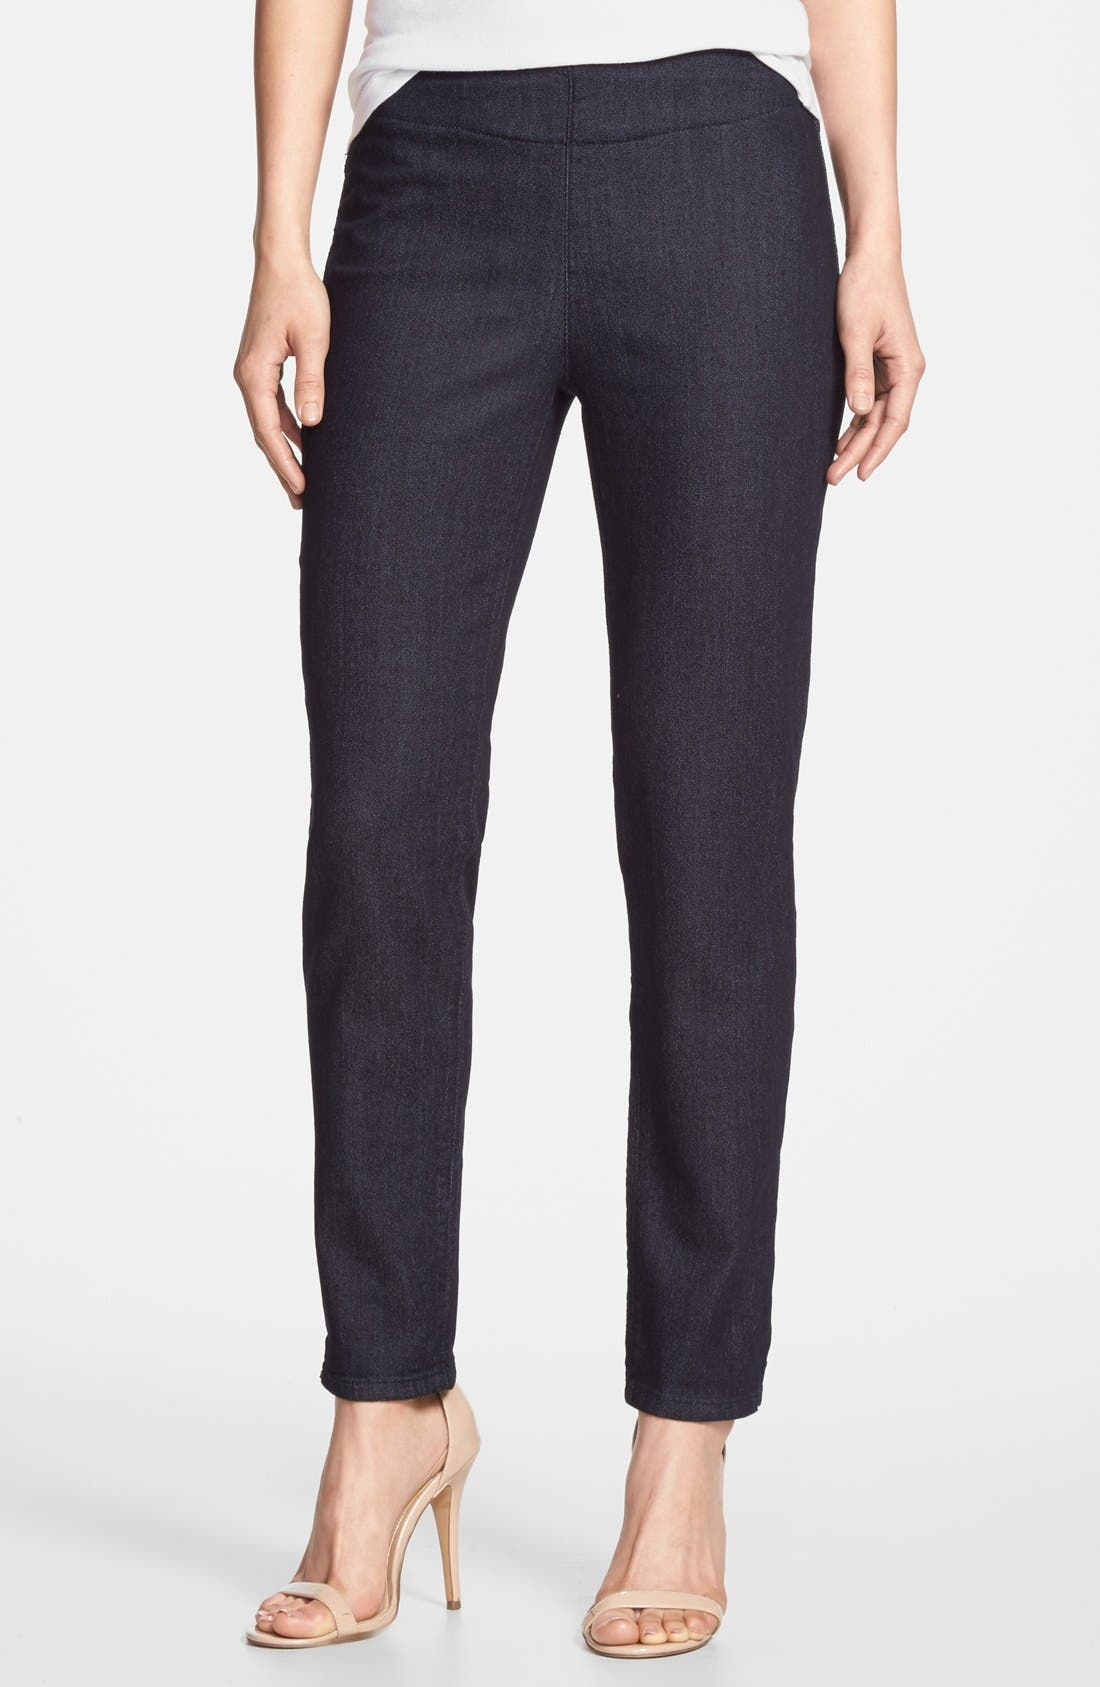 Alternate Image 1 Selected - NYDJ 'Millie' Pull-On Stretch Fitted Ankle Jeans (Dark Enzyme) (Regular & Petite)